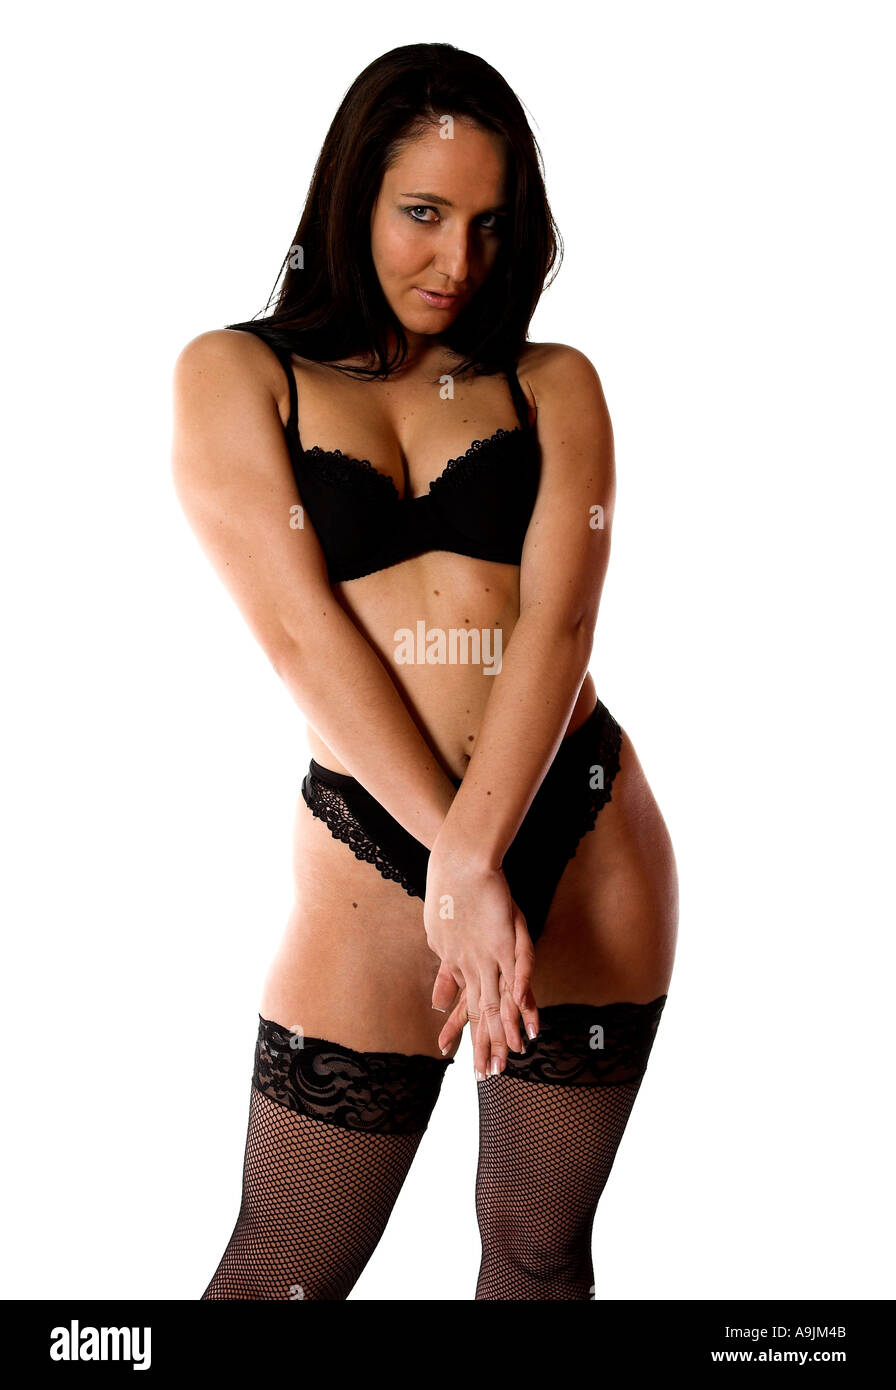 a50b77ab711 A female model with long black hair wearing classic black lingerie poses  against a white background